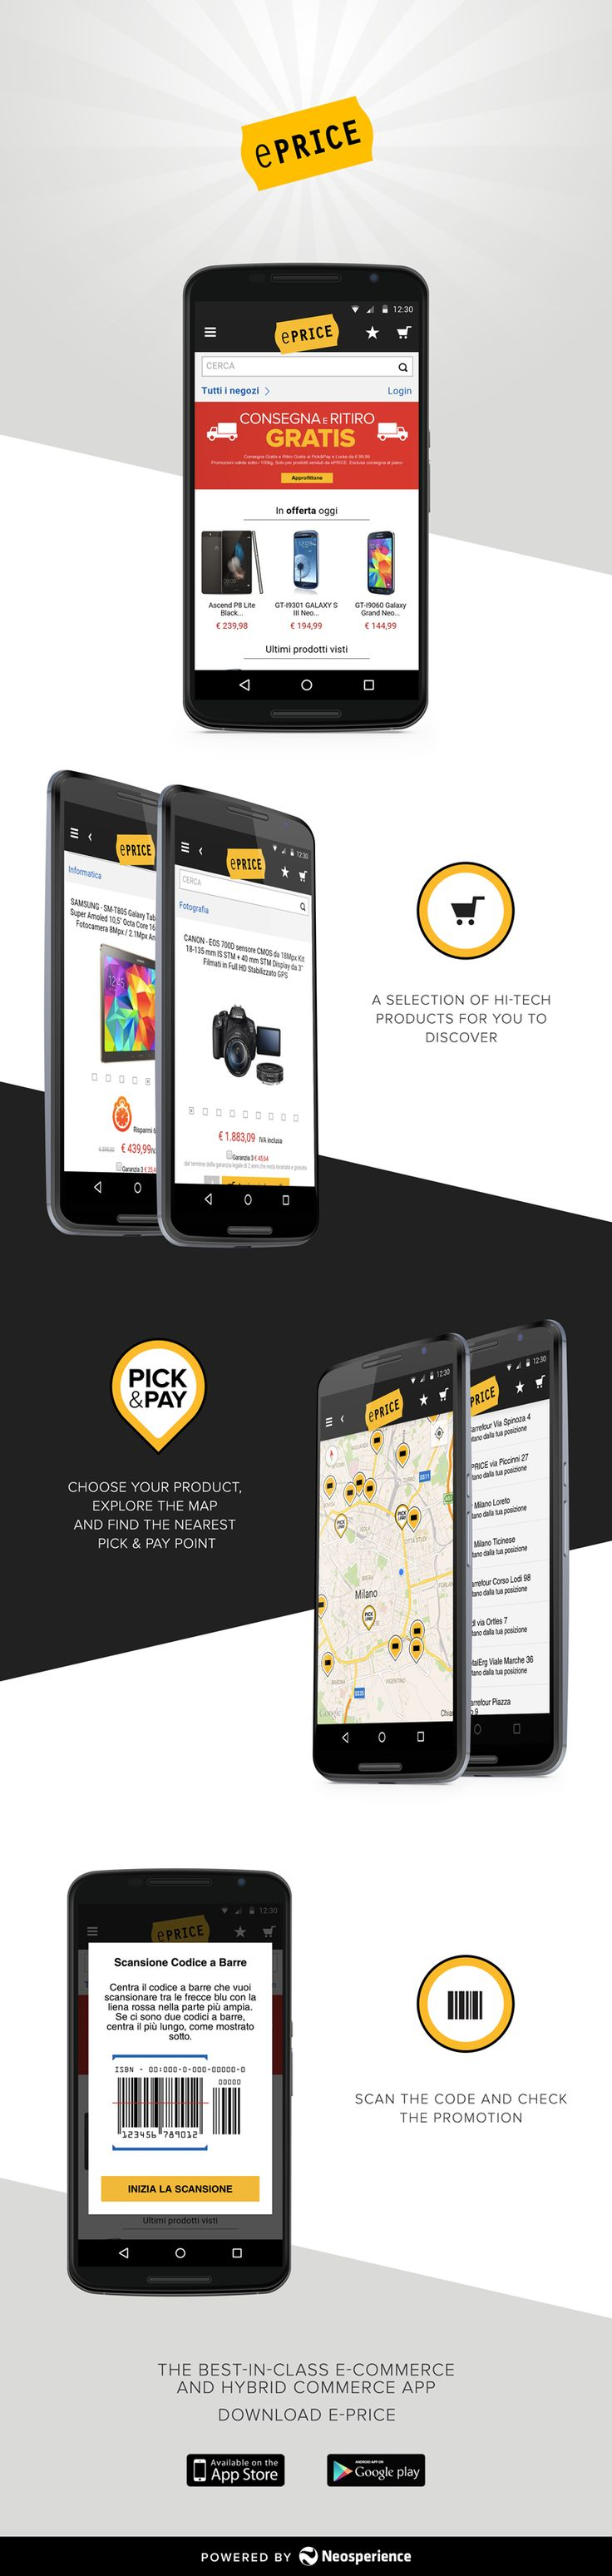 Best-in-class e-commerce and hybrid commerce mobile app dedicated to hi-tech products.